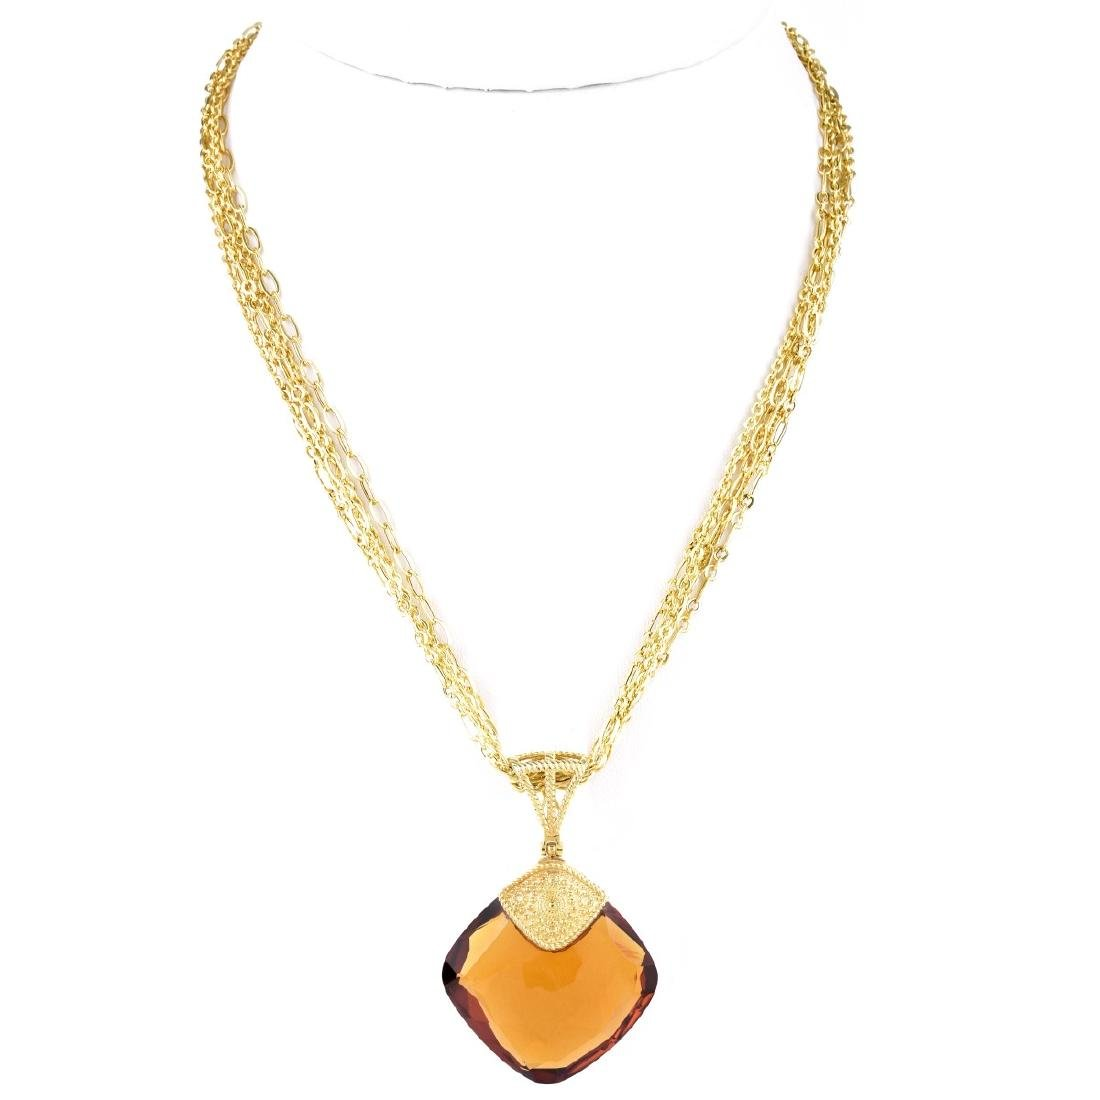 Italian Citrine and 14K Gold Necklace - 2